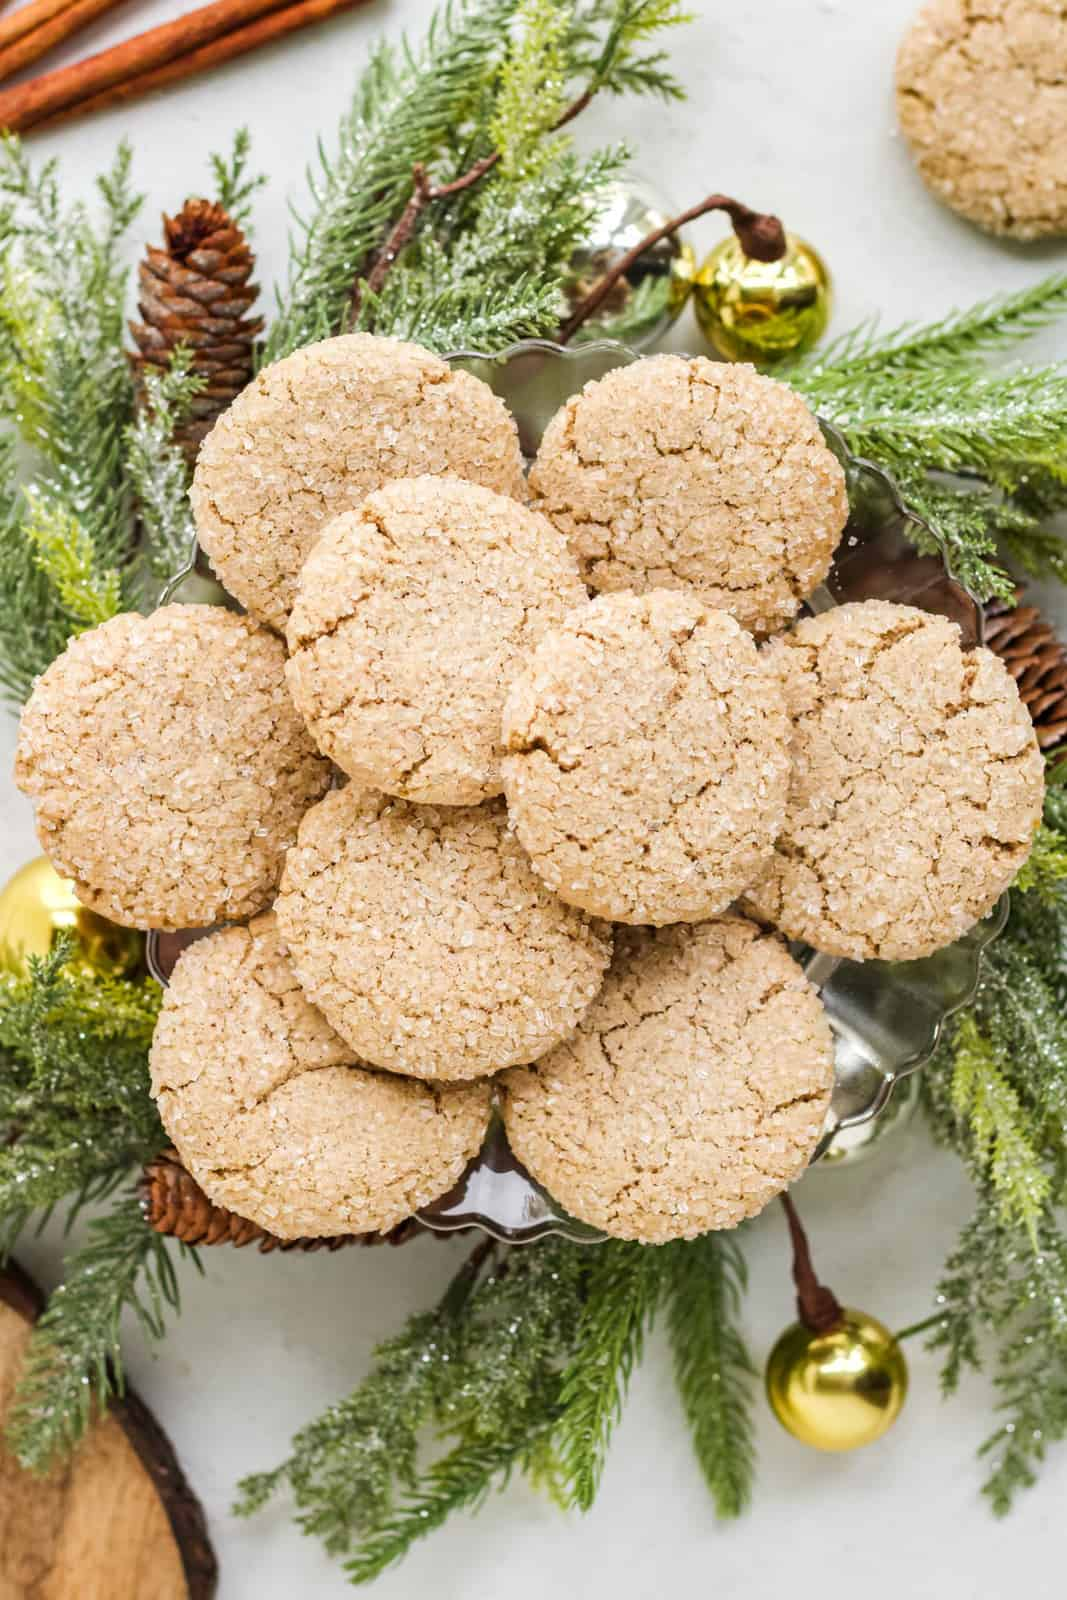 Overhead of spice cookies stacked on platter with tree sprigs